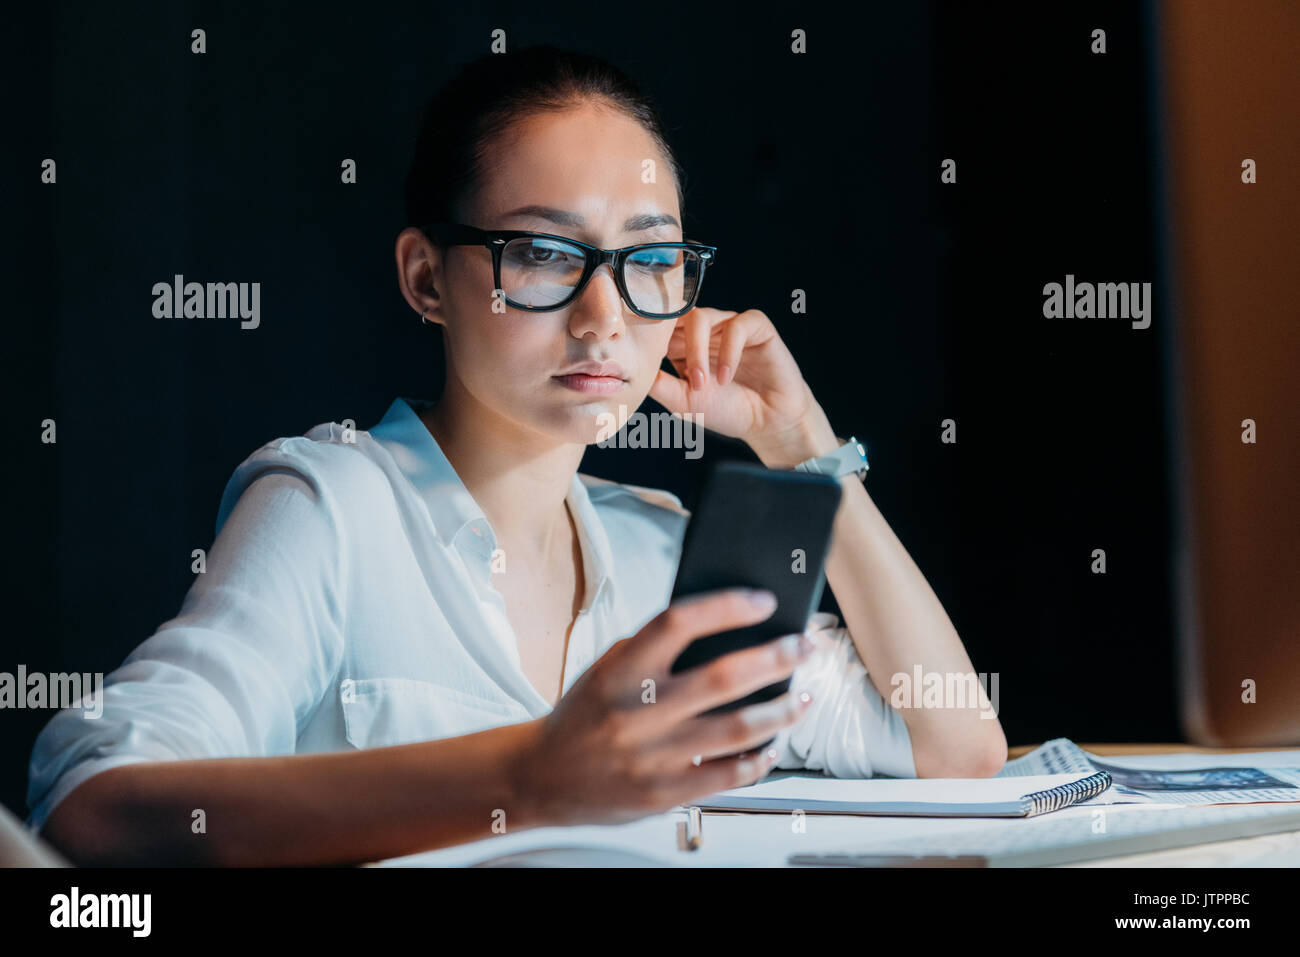 young tired asian businesswoman in eyeglasses using smartphone and working till late in office Stock Photo